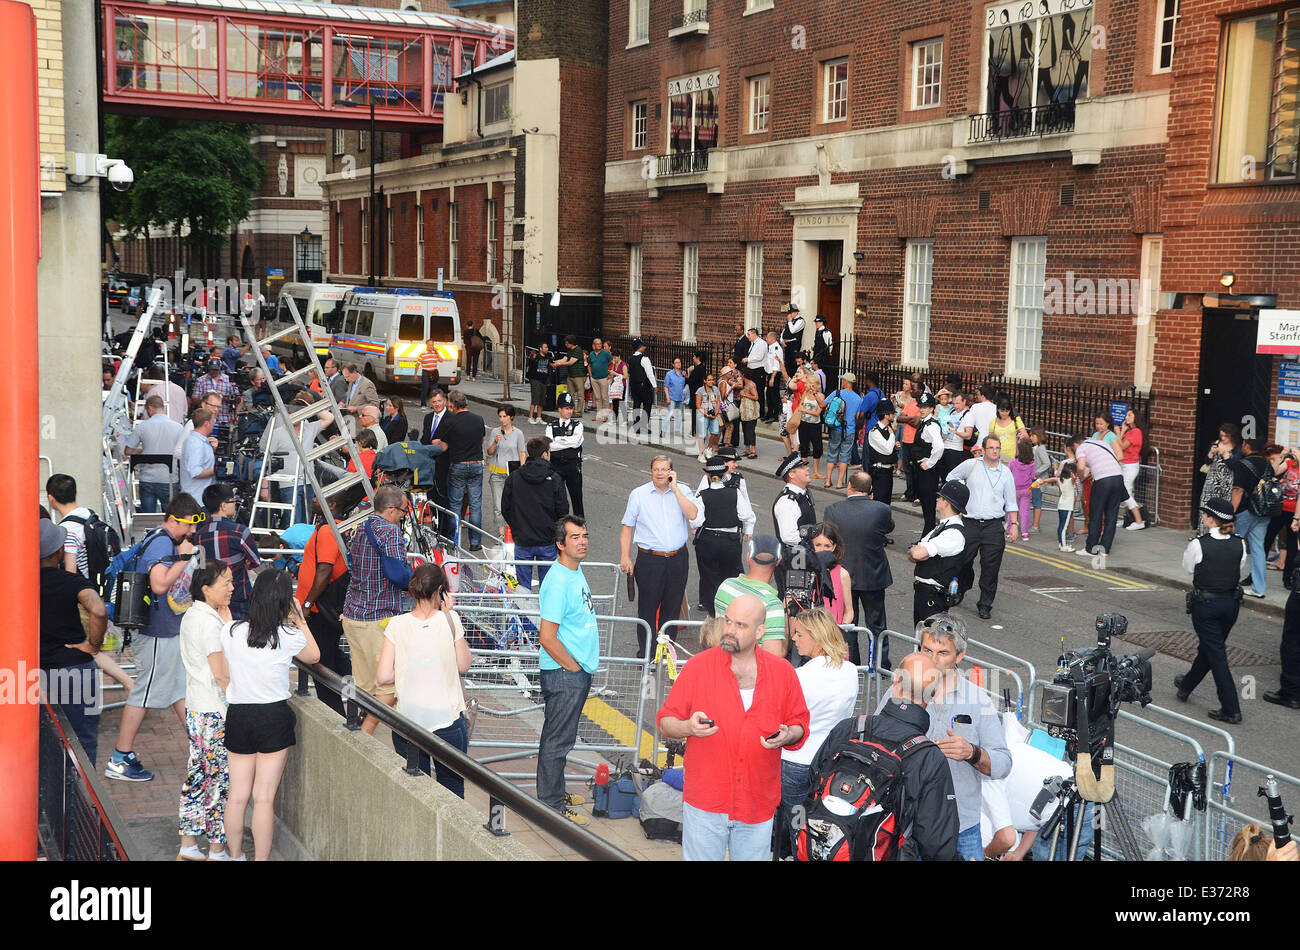 Media organisations and royal fans pack up following the departure of Prince William, Duke of Cambridge and Catherine, - Stock Image